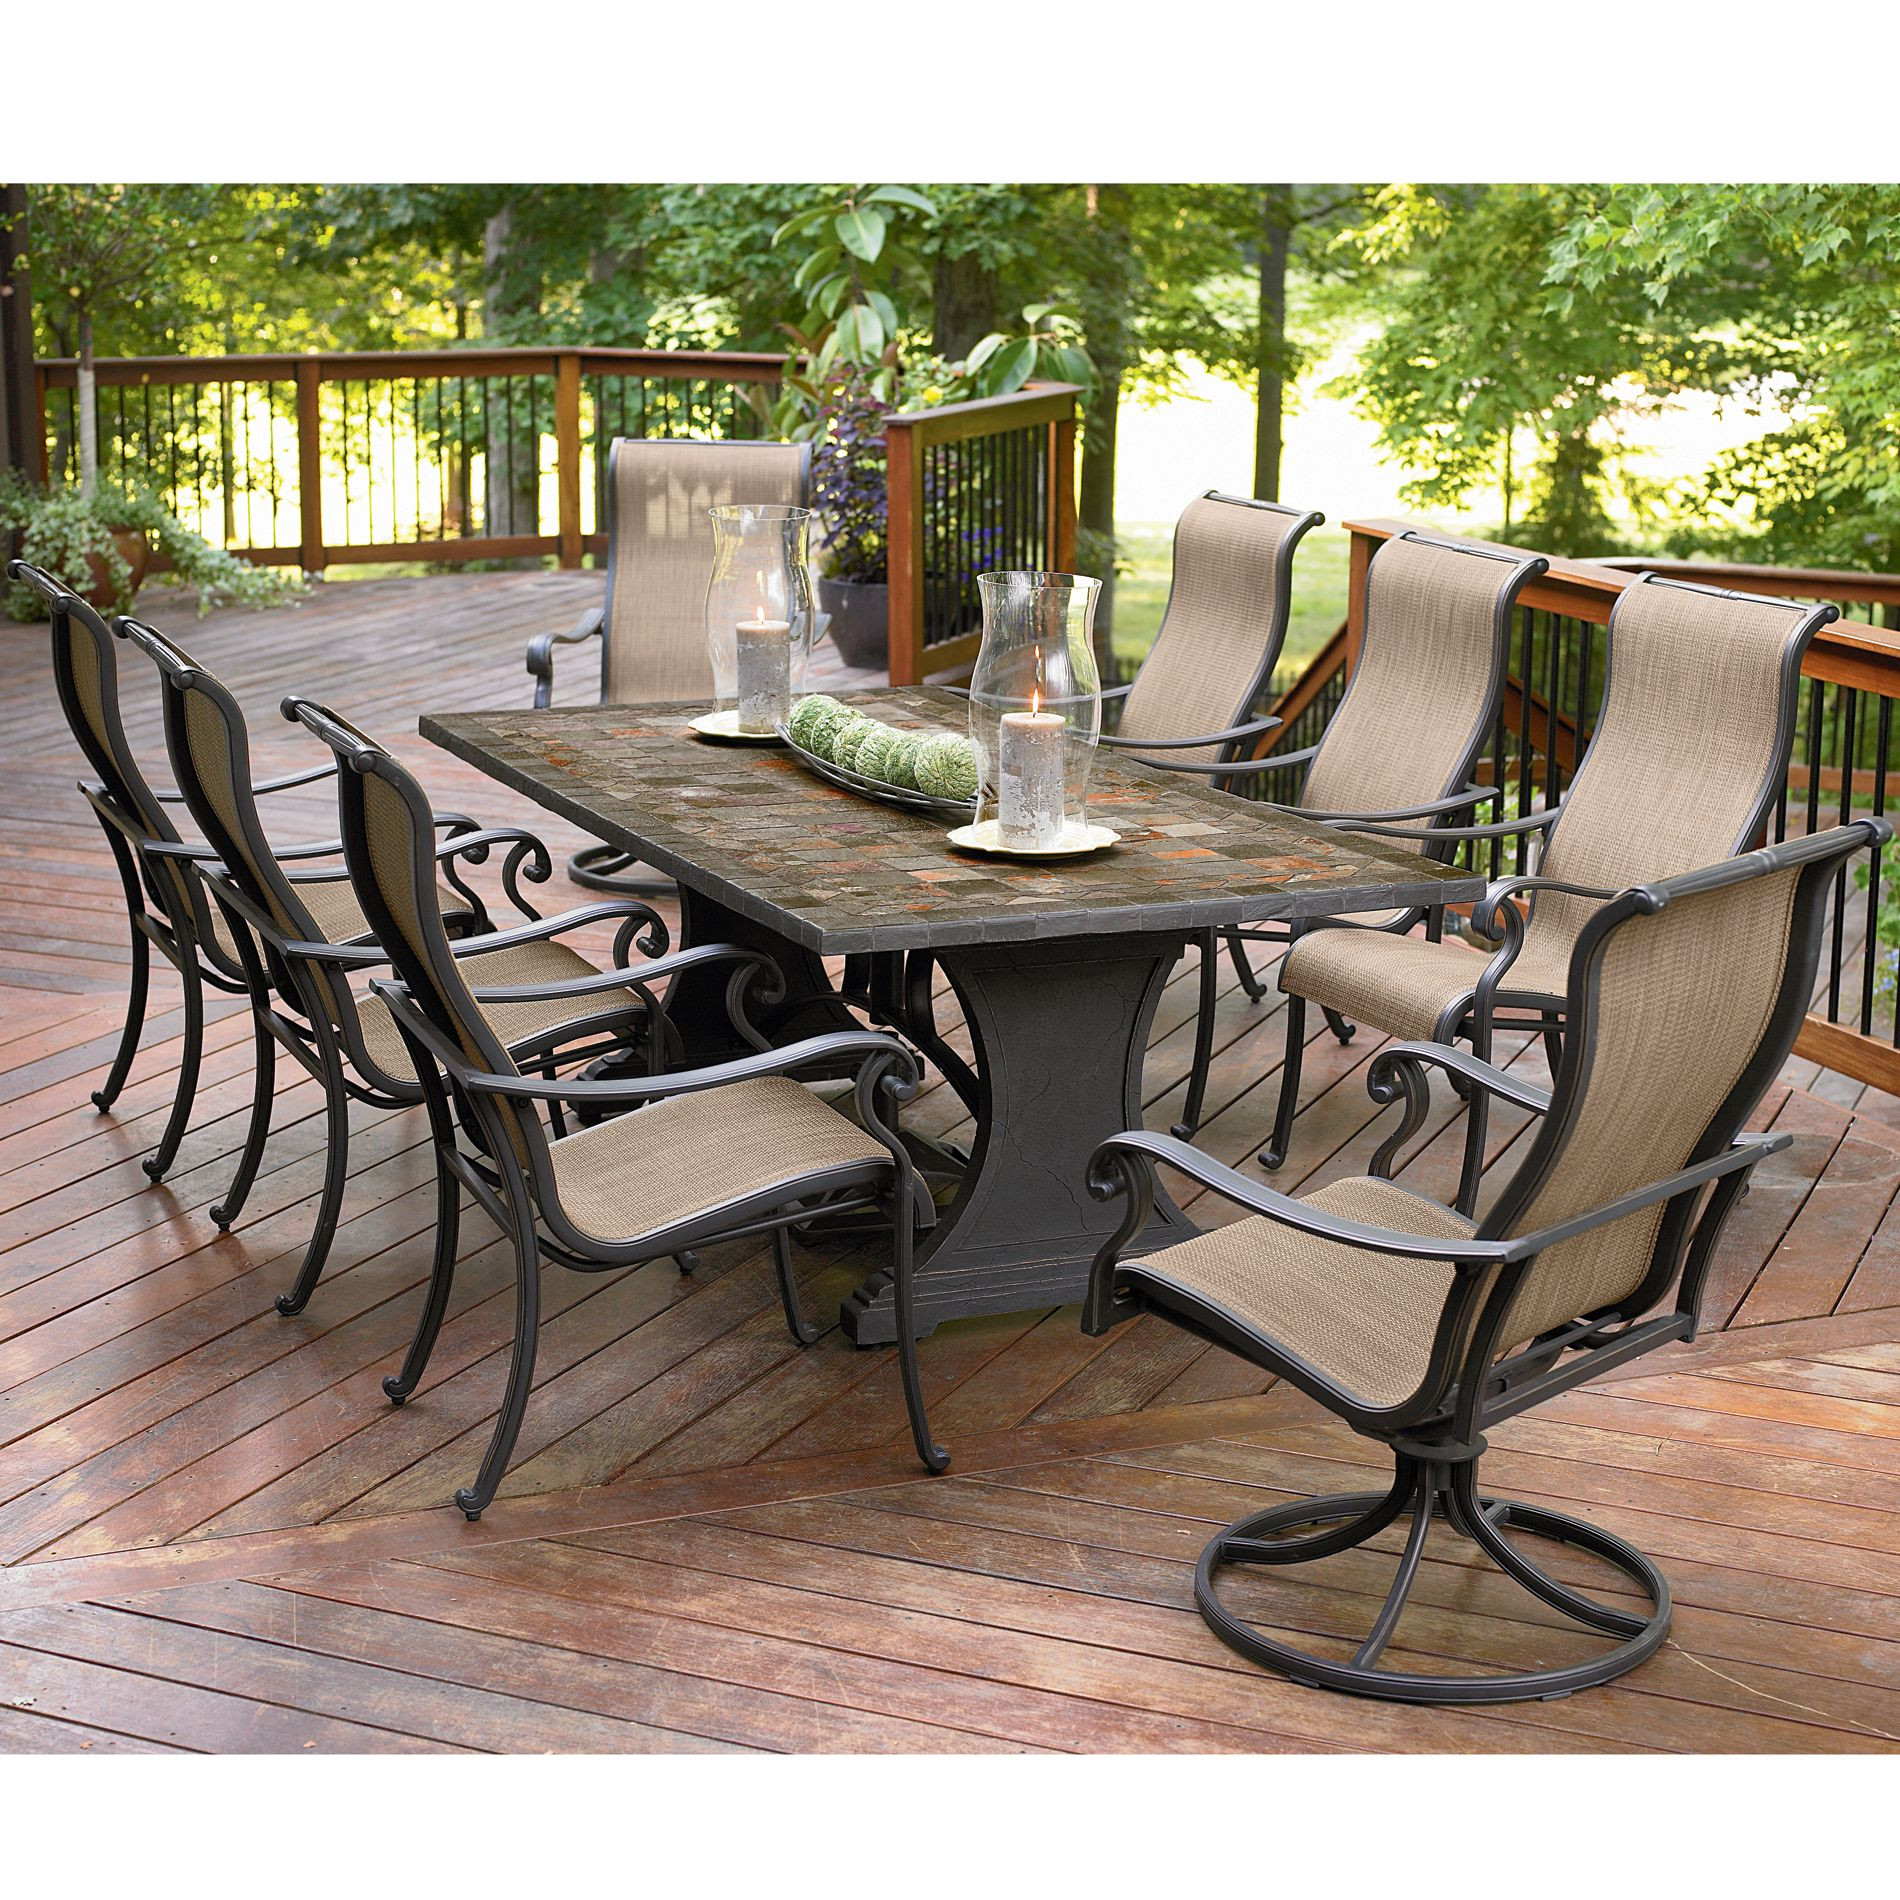 Best ideas about Patio Dining Set . Save or Pin Agio International Panorama 9 Pc Patio Dining Set Now.